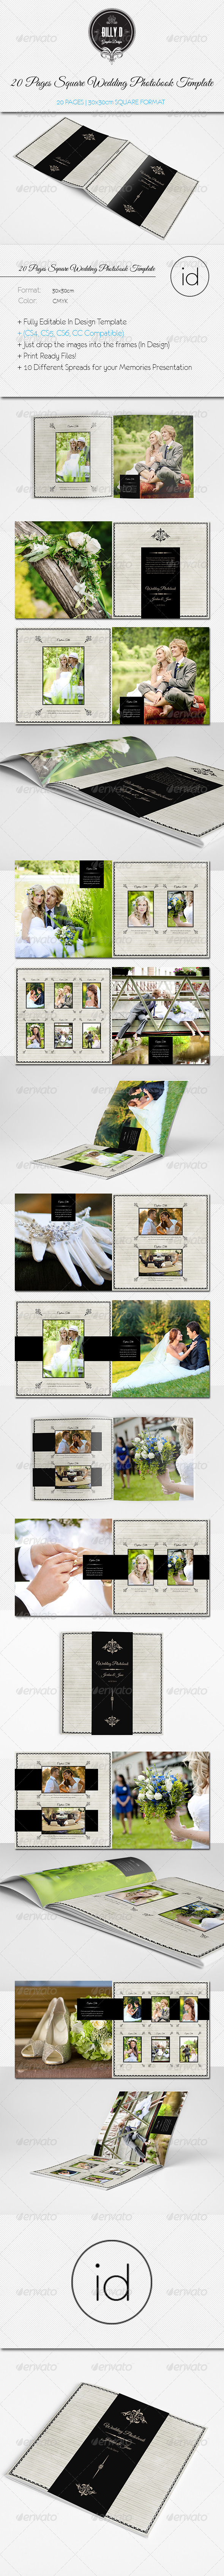 GraphicRiver 20 Pages Square Wedding Photobook Template 8619747